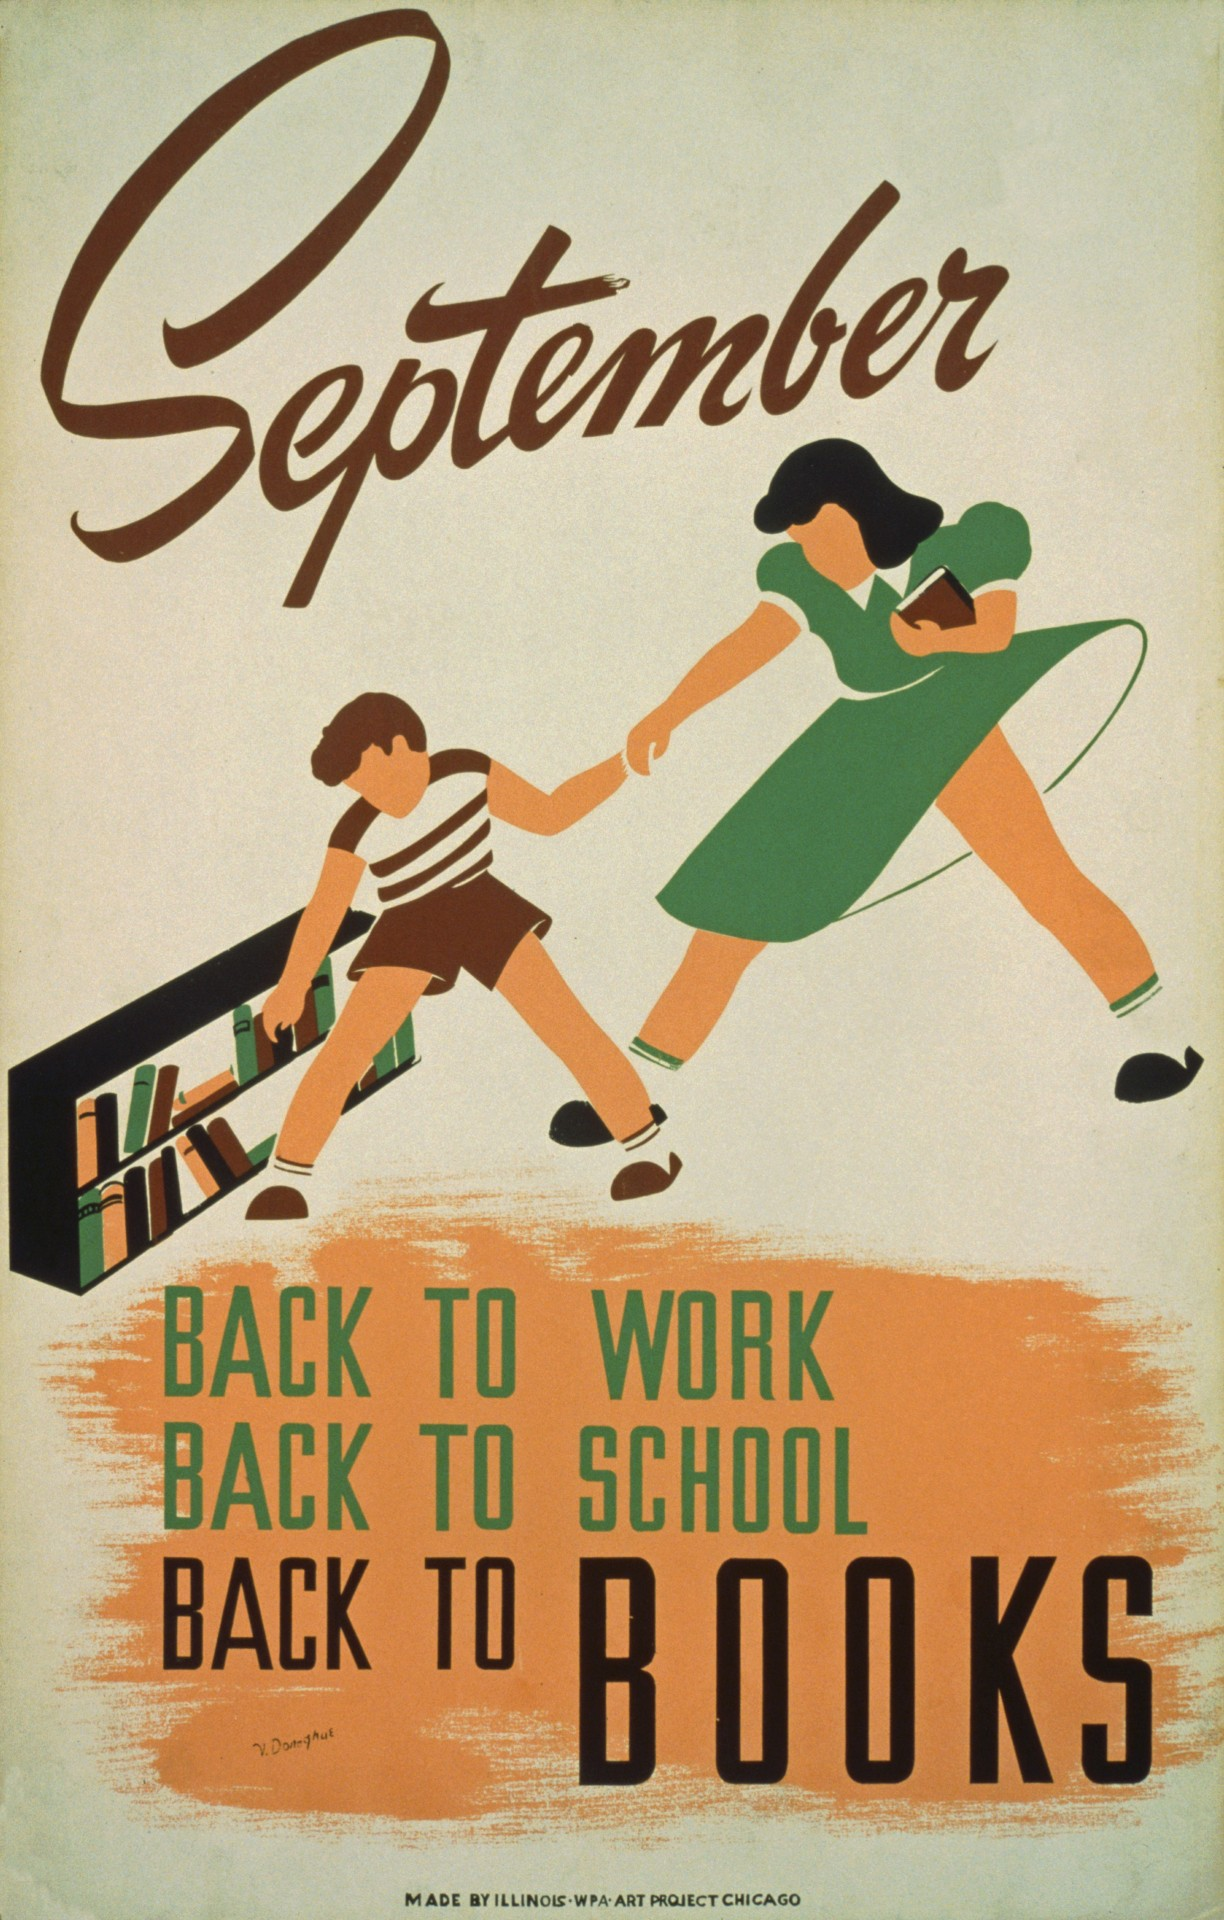 back to school parent fitness advice